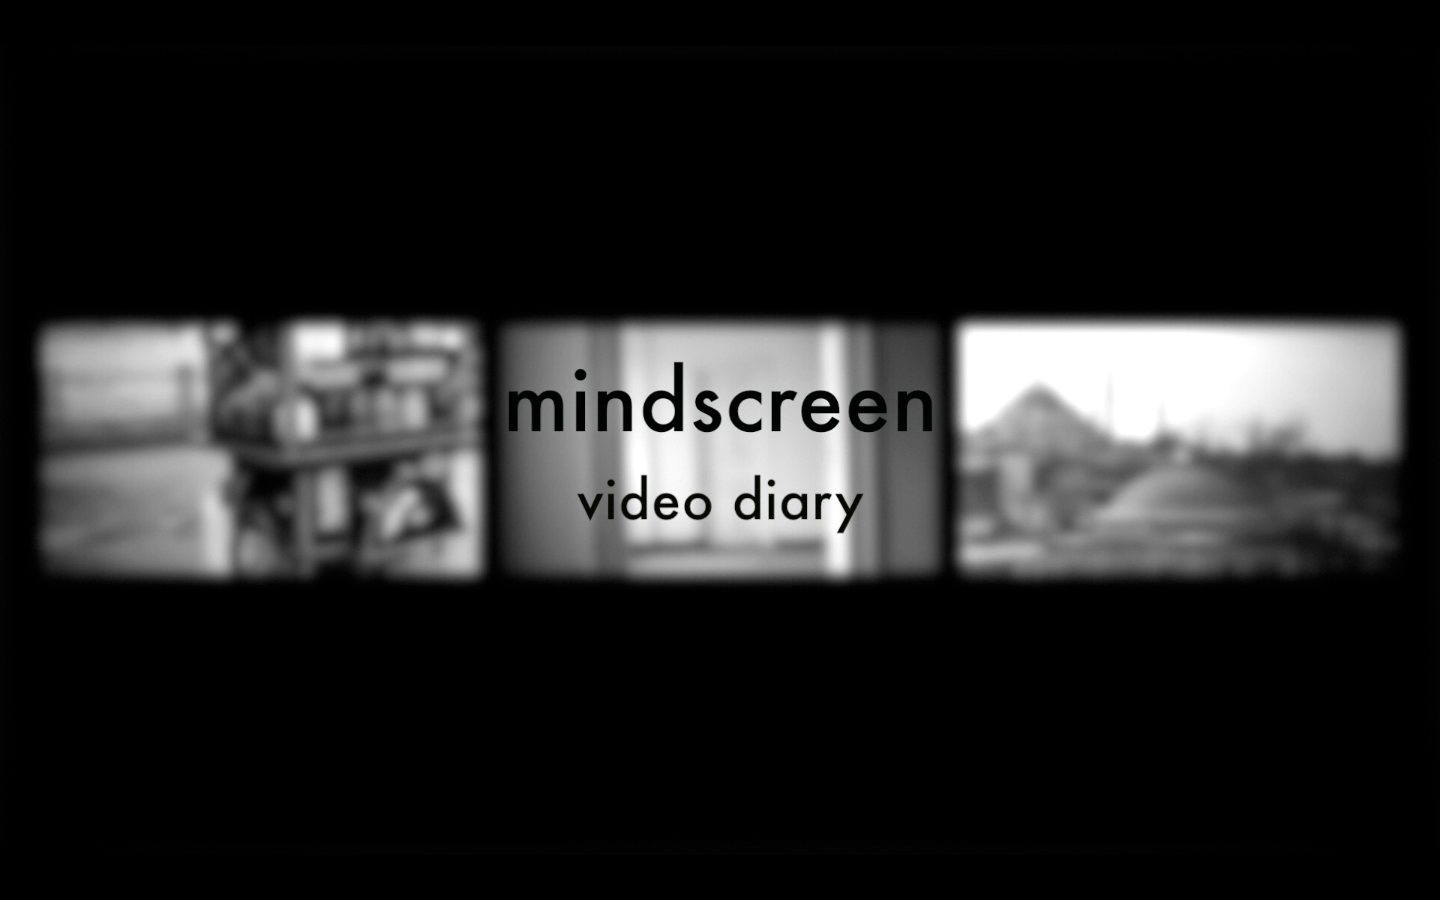 Mindscreen Video Diary